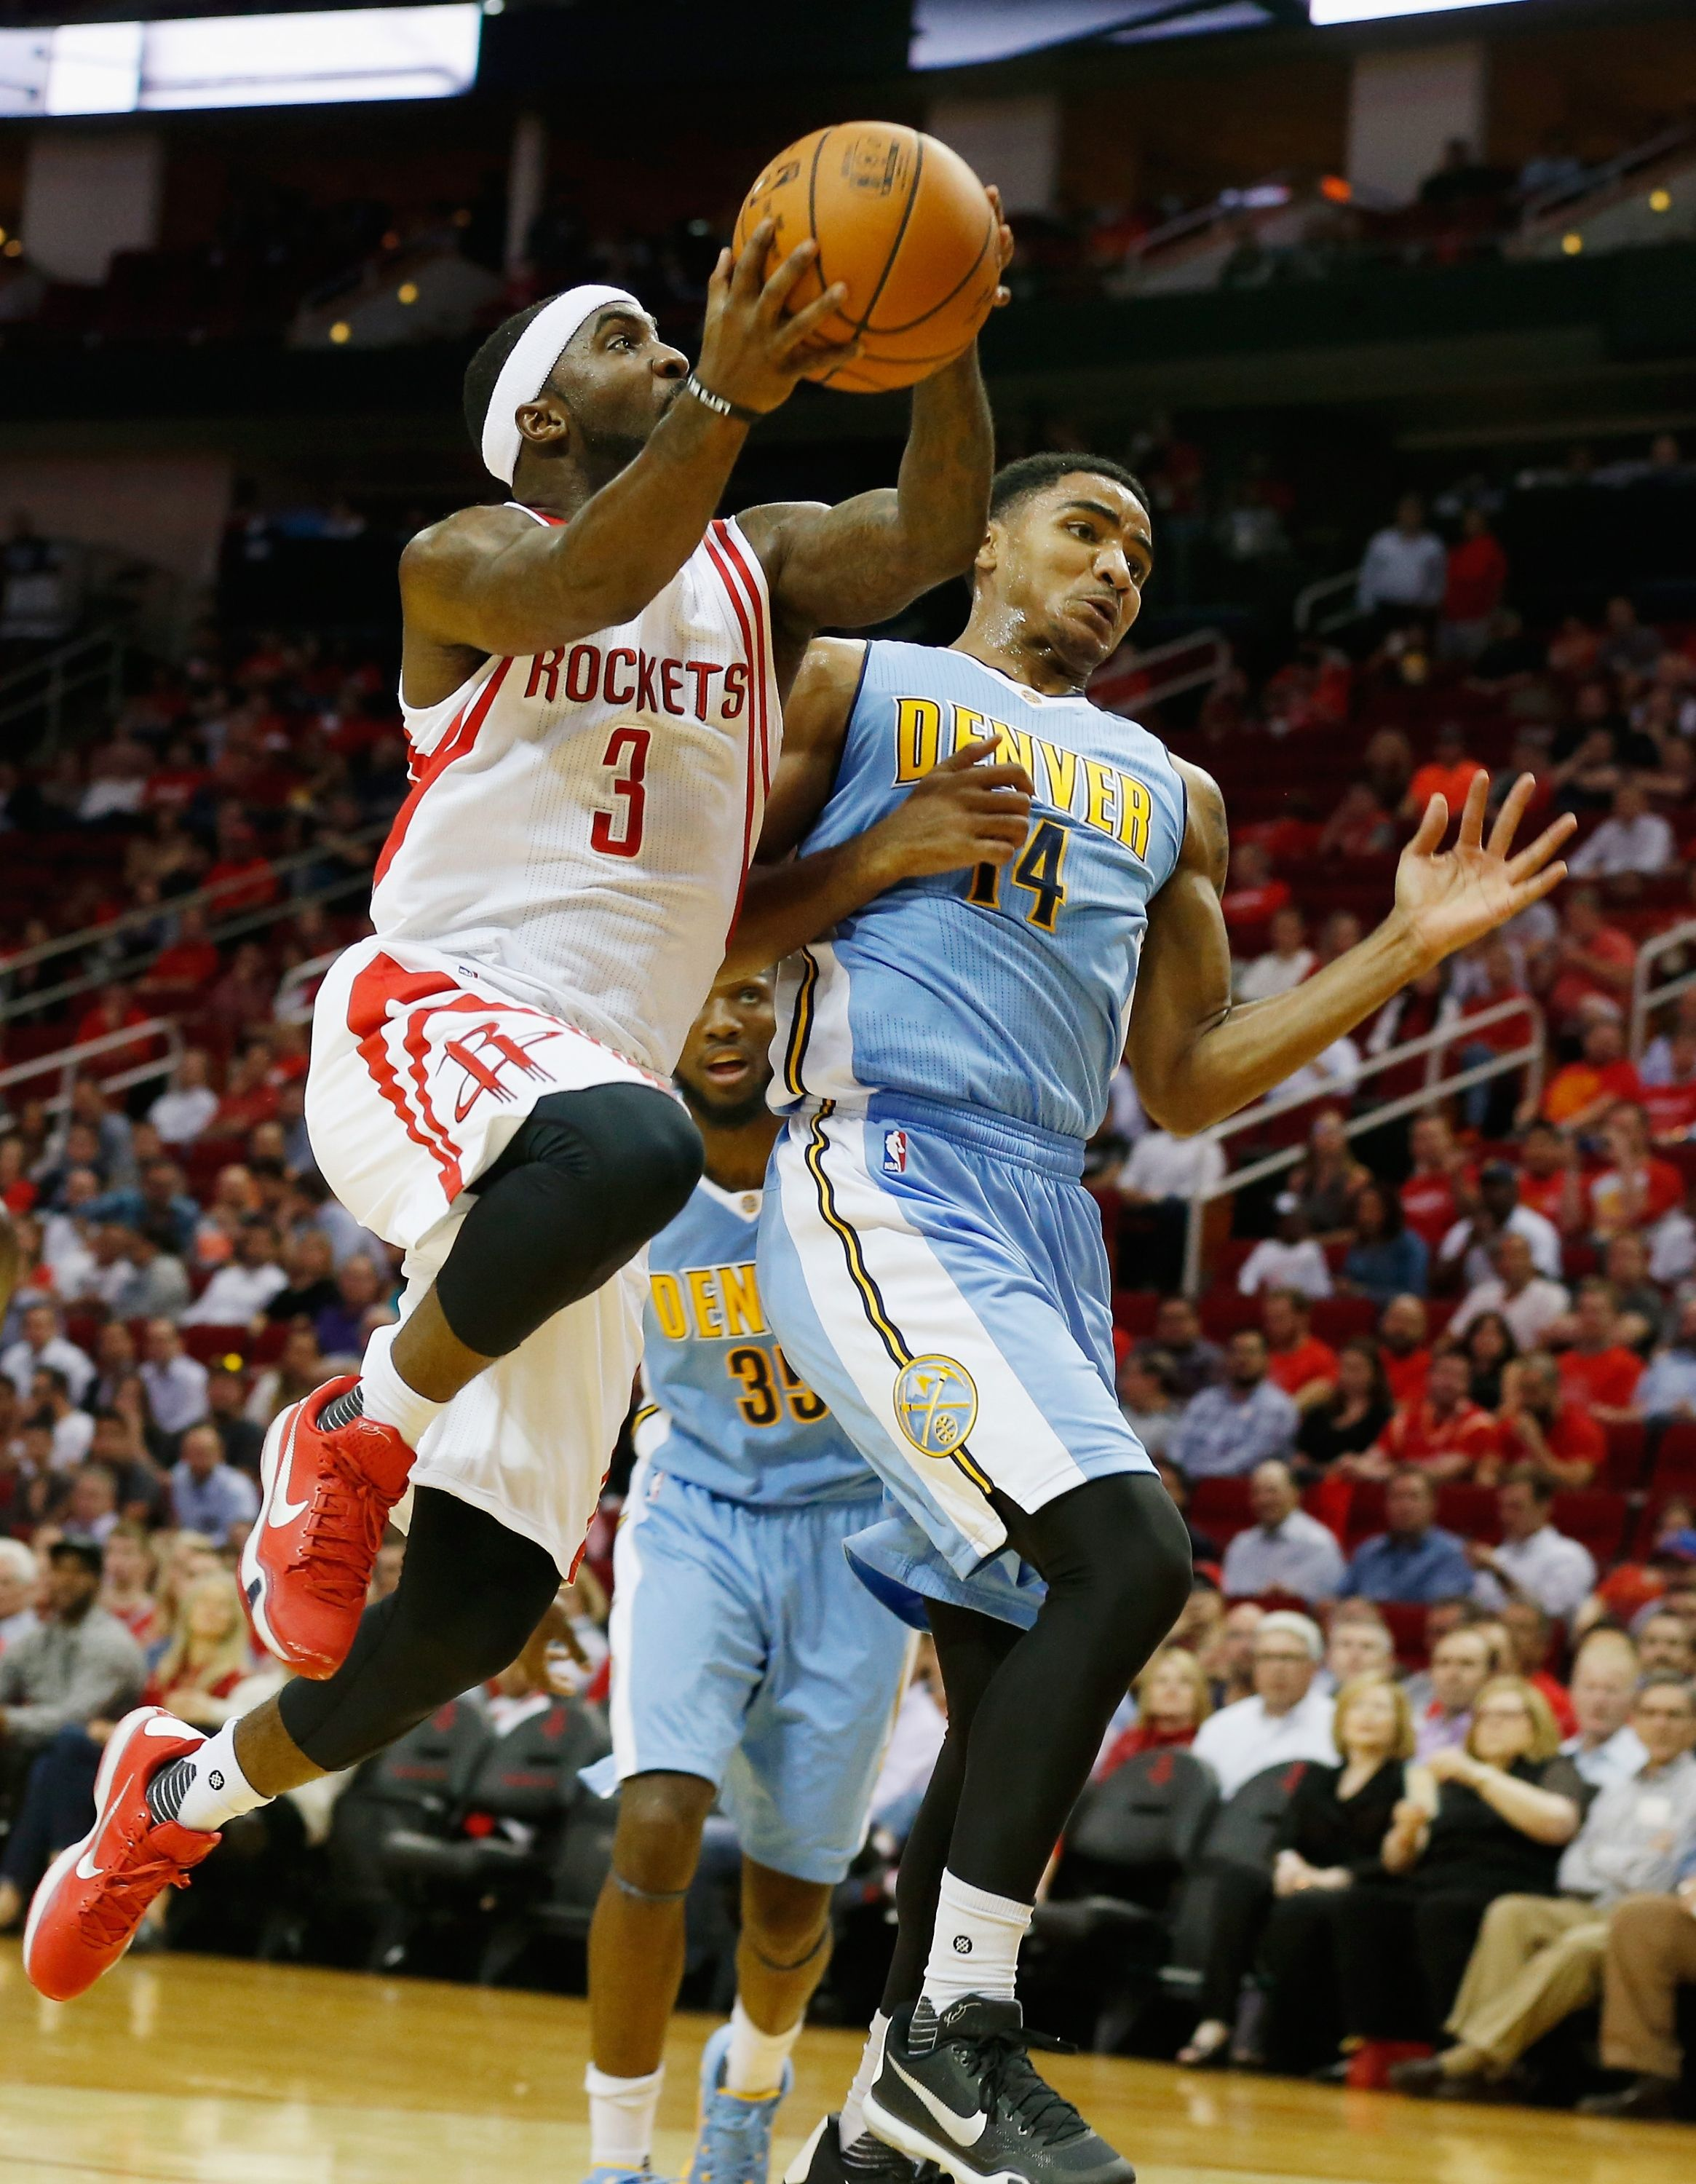 Ty Lawson #3 of the Houston Rockets drives with the basketball against Gary Harris #14 of the Denver Nuggets during their game at the Toyota Center on October 28, 2015 in Houston, Texas.